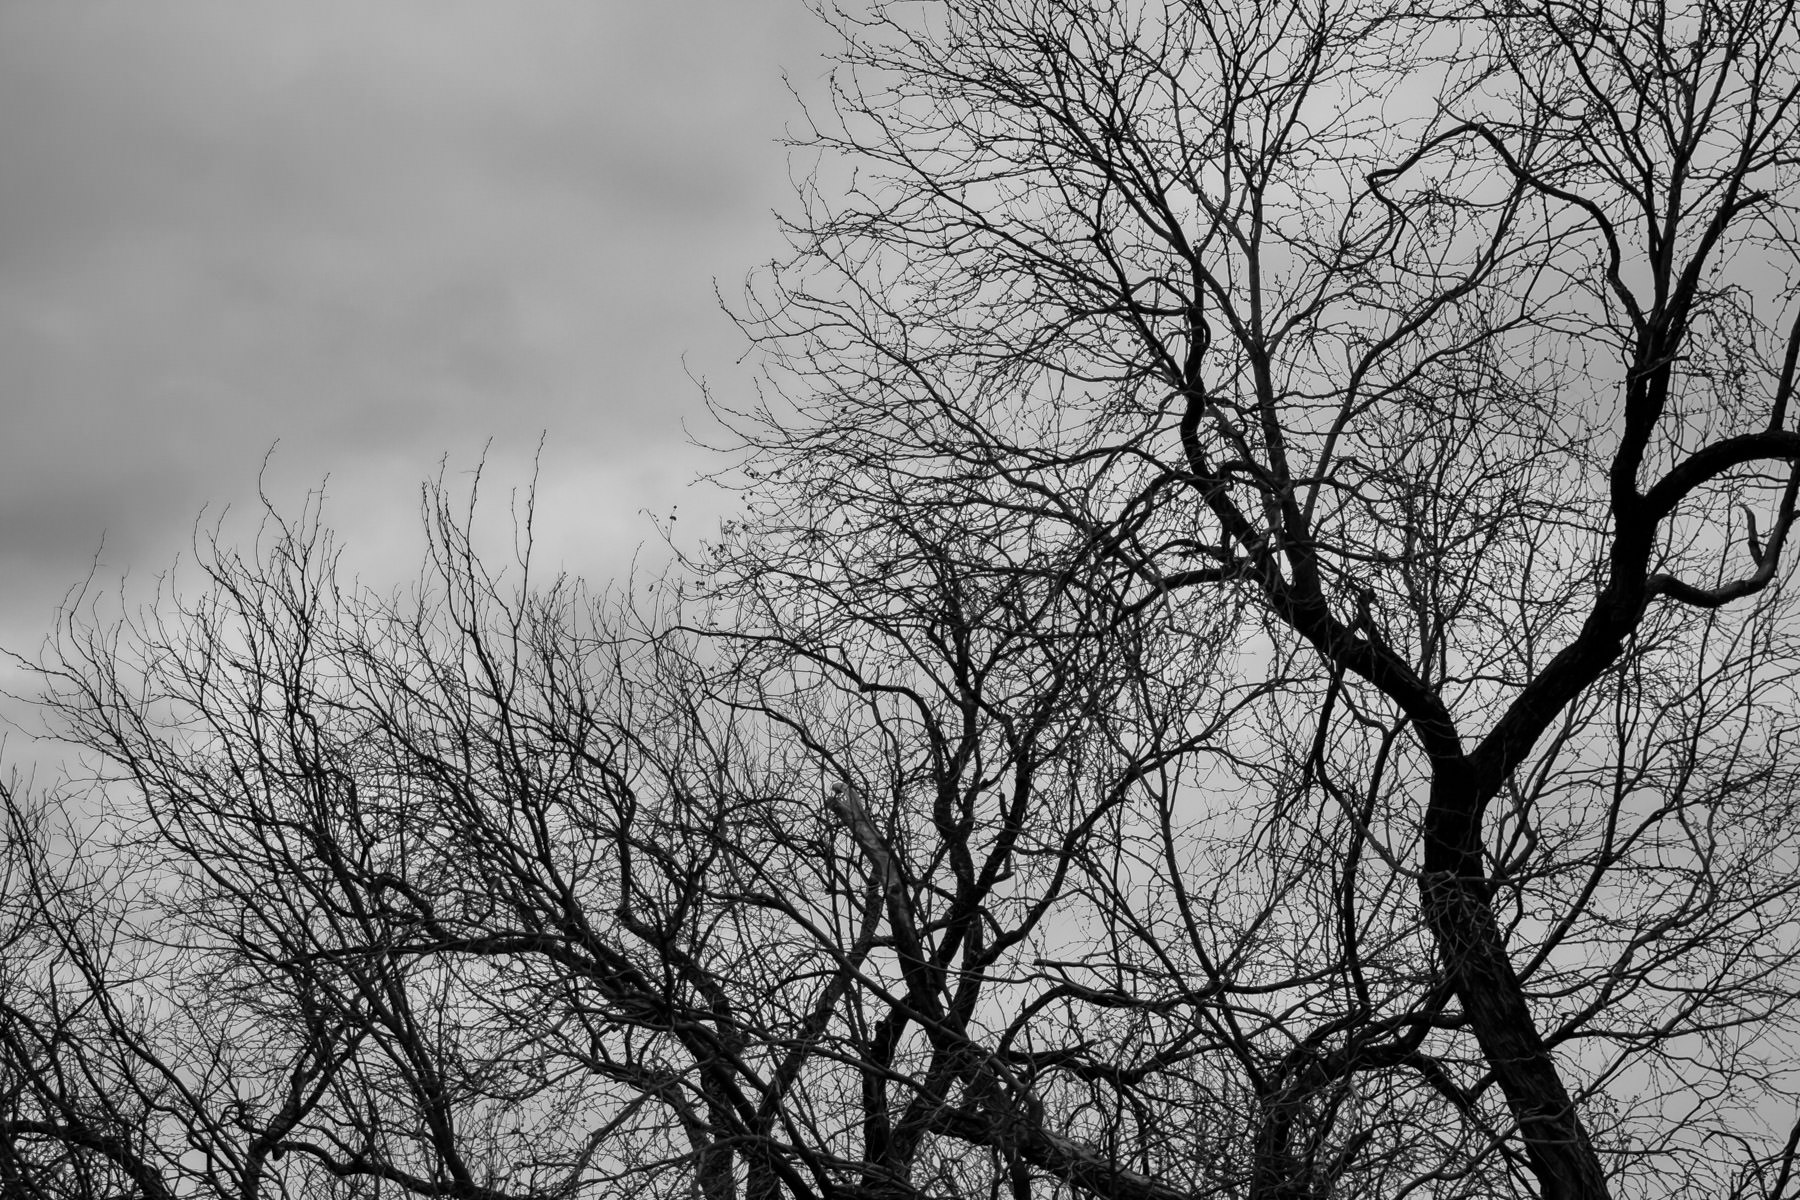 Intricate tree branches on on overcast day at Fair Park, Dallas.